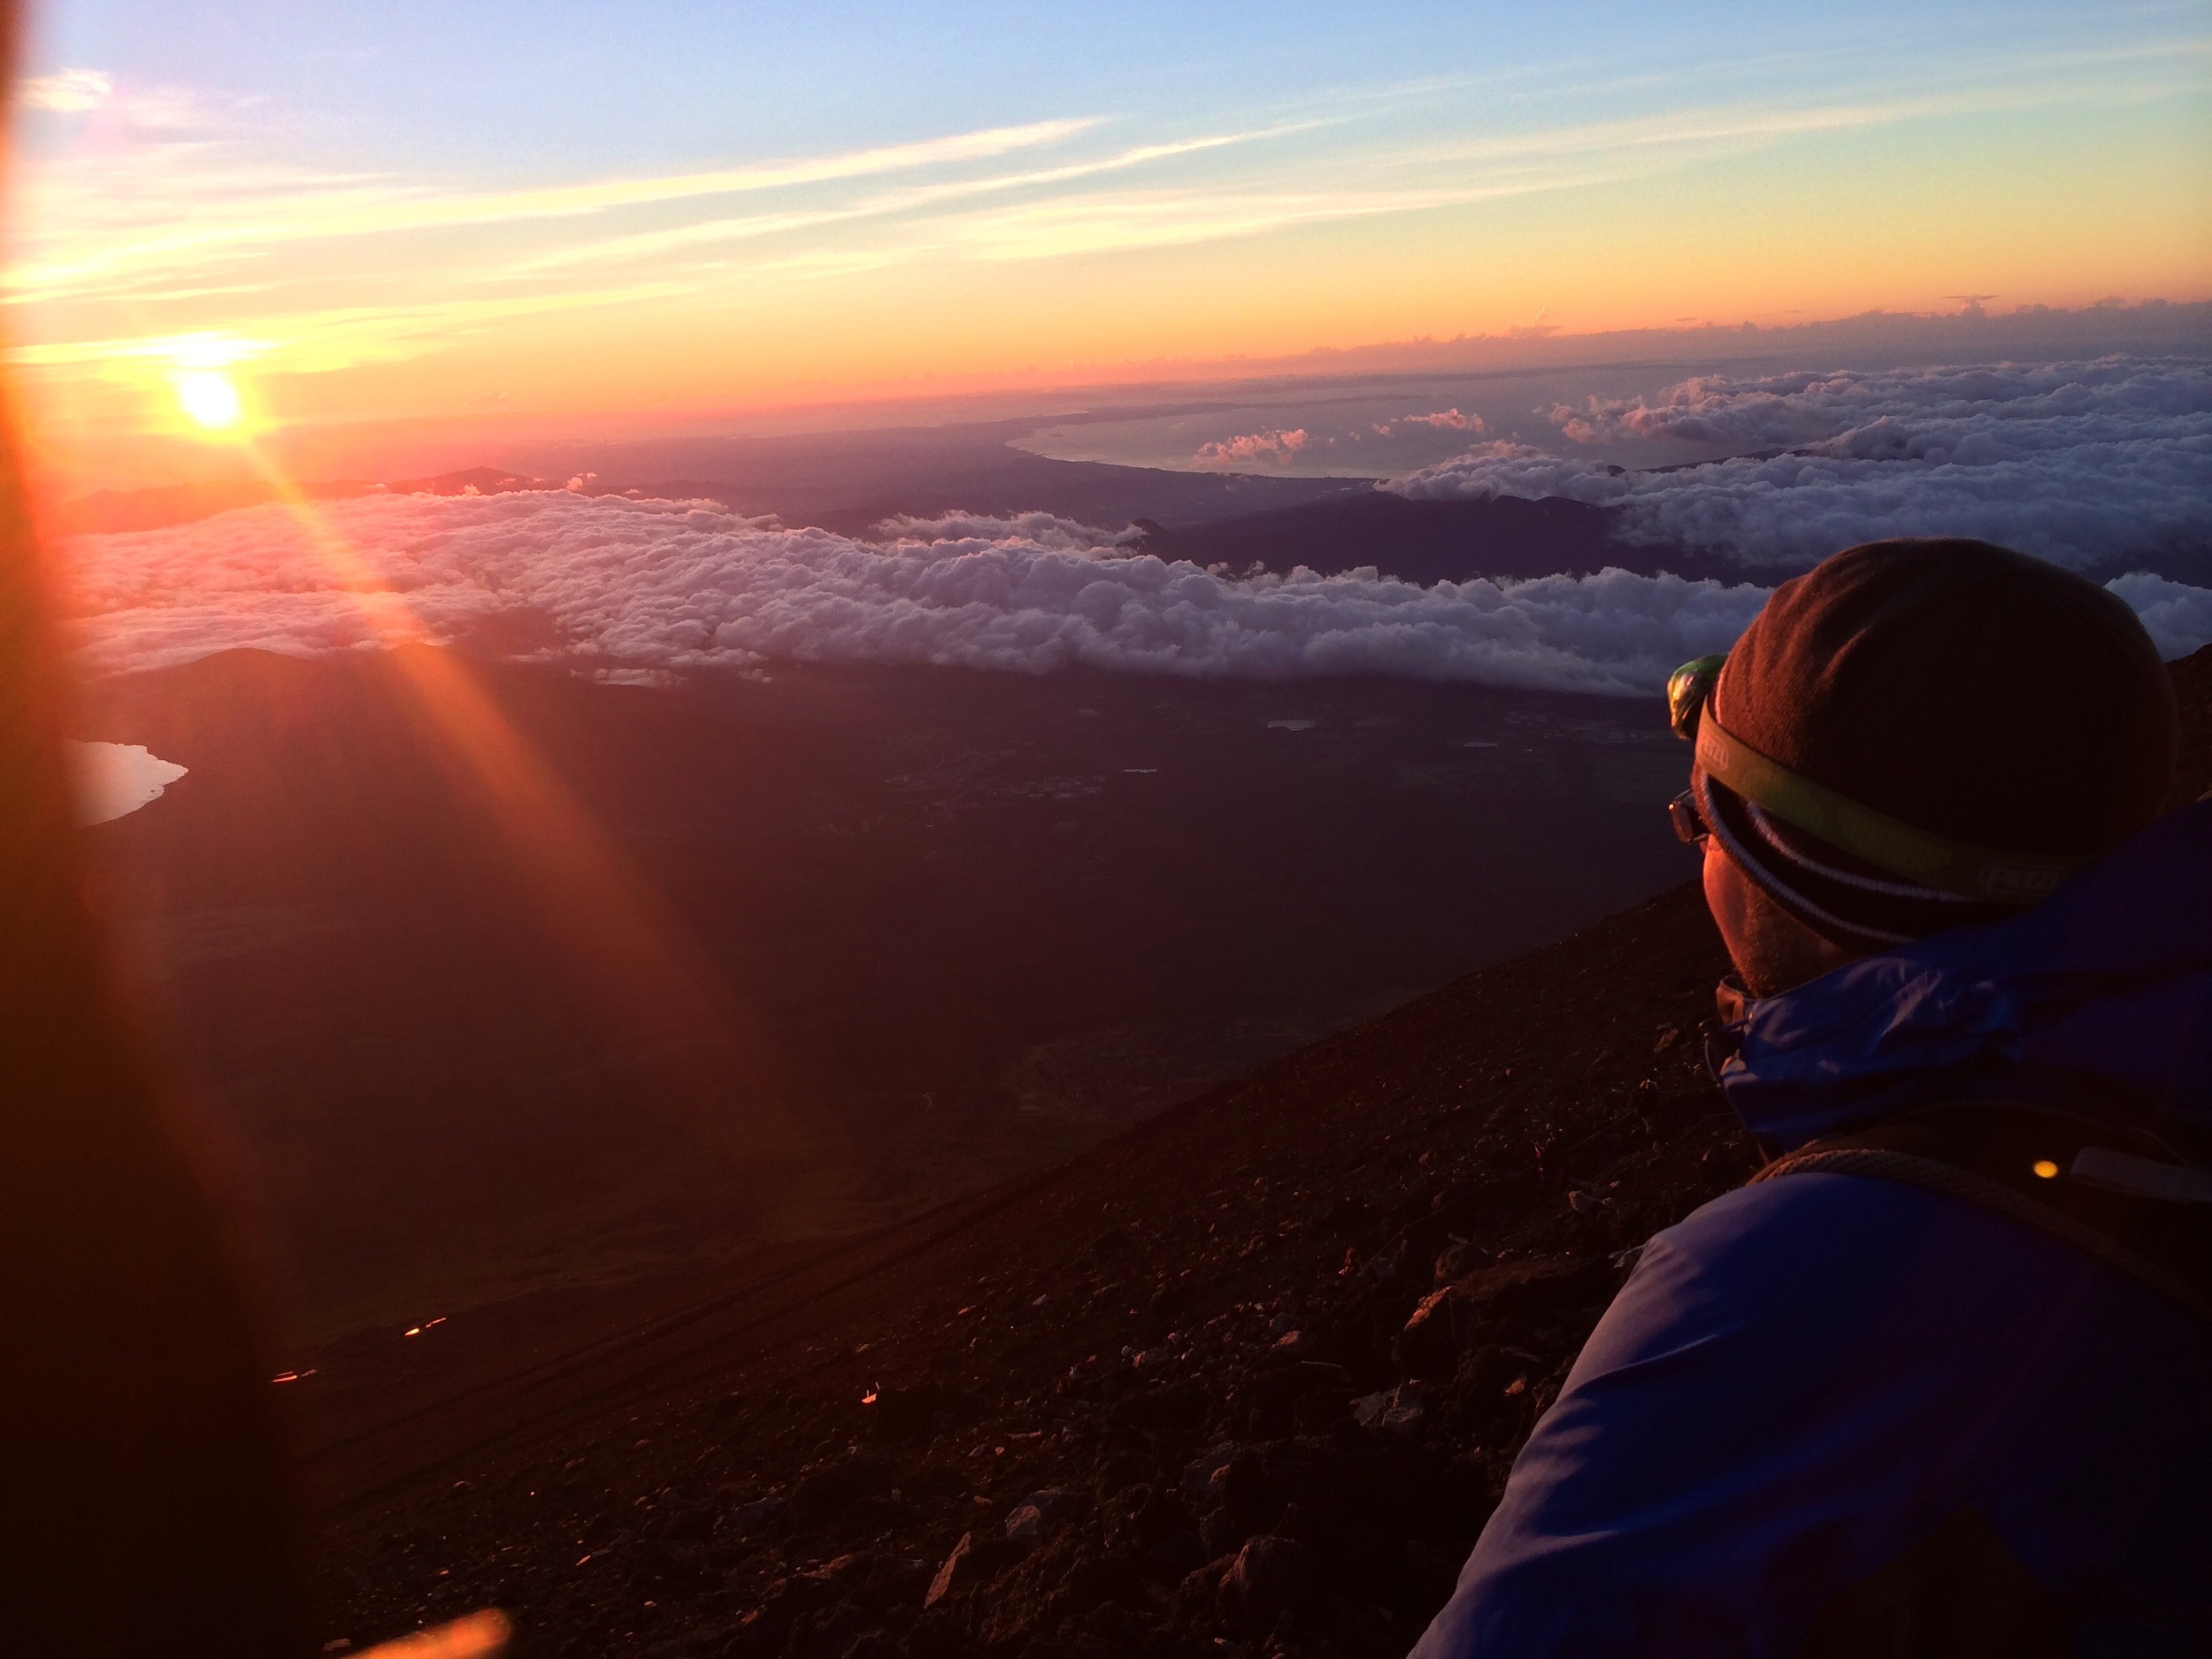 Climbing Mt. Fuji was about as close to a transcendental spiritual experience that I have ever had. And if there were such a thing as a perfect moment, this would be mine.